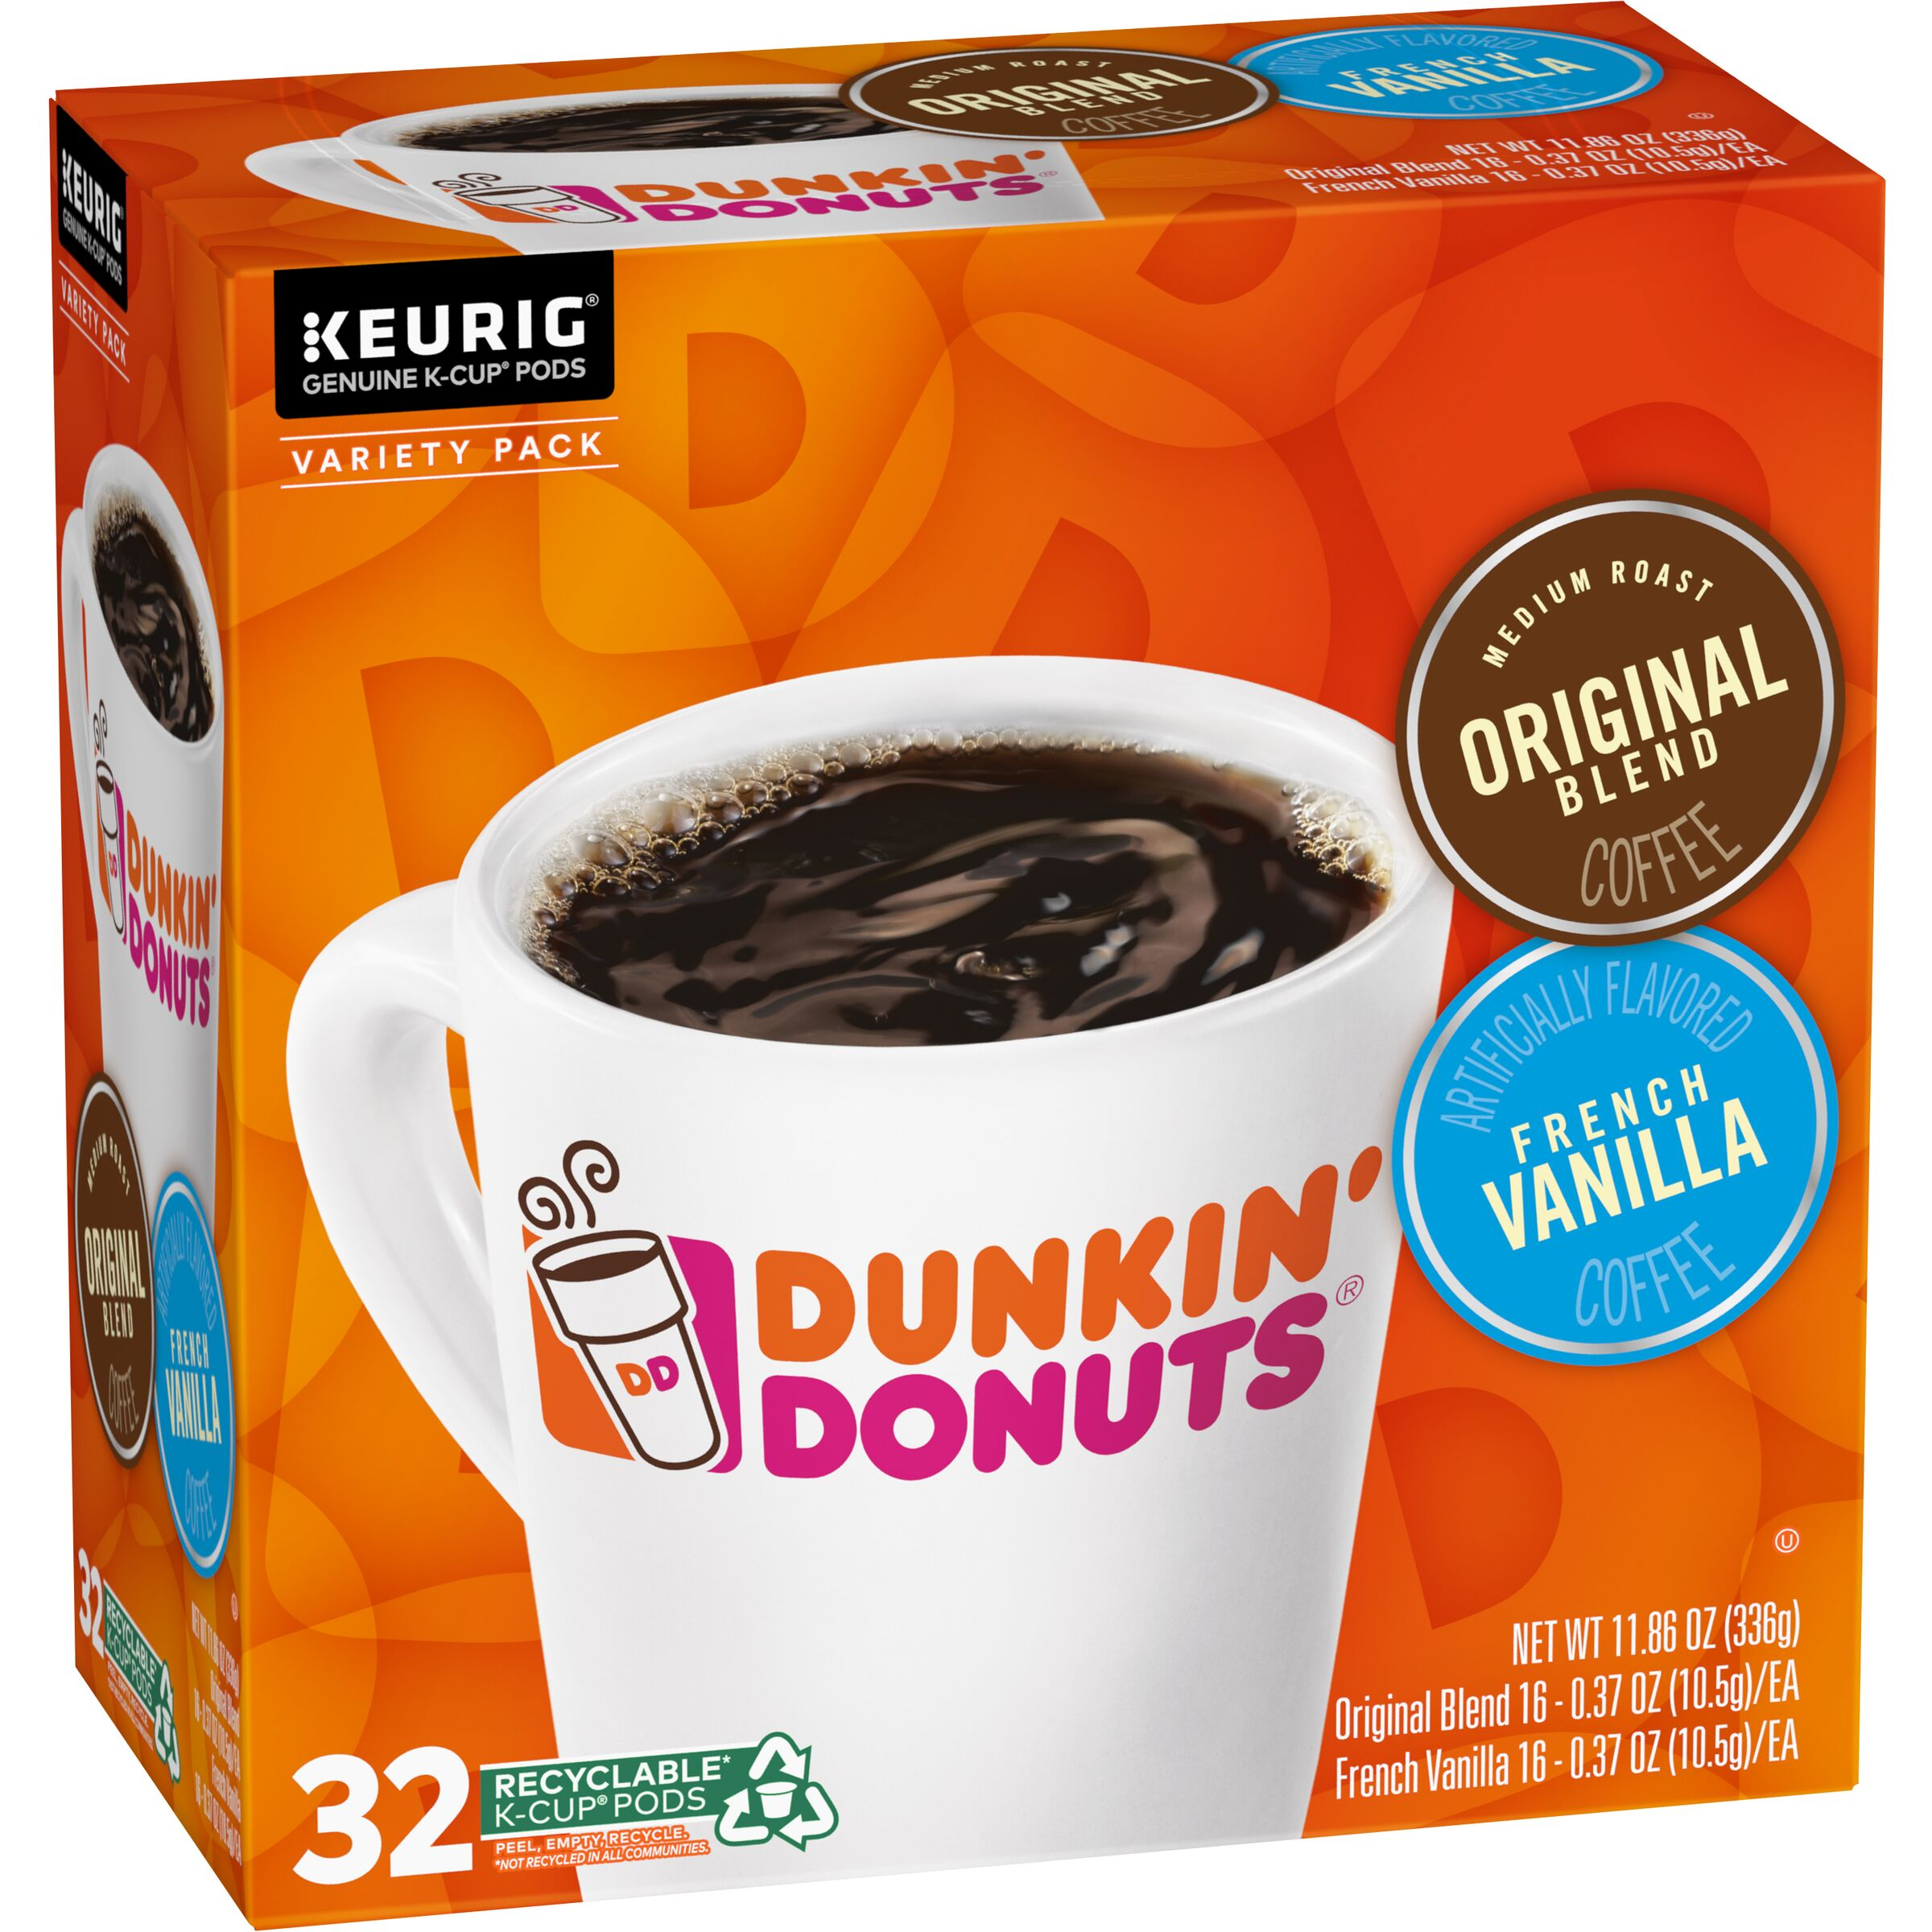 Dunkin' Donuts  Original Blend & French Vanilla Variety Pack K-Cup® Pods, 32 Count